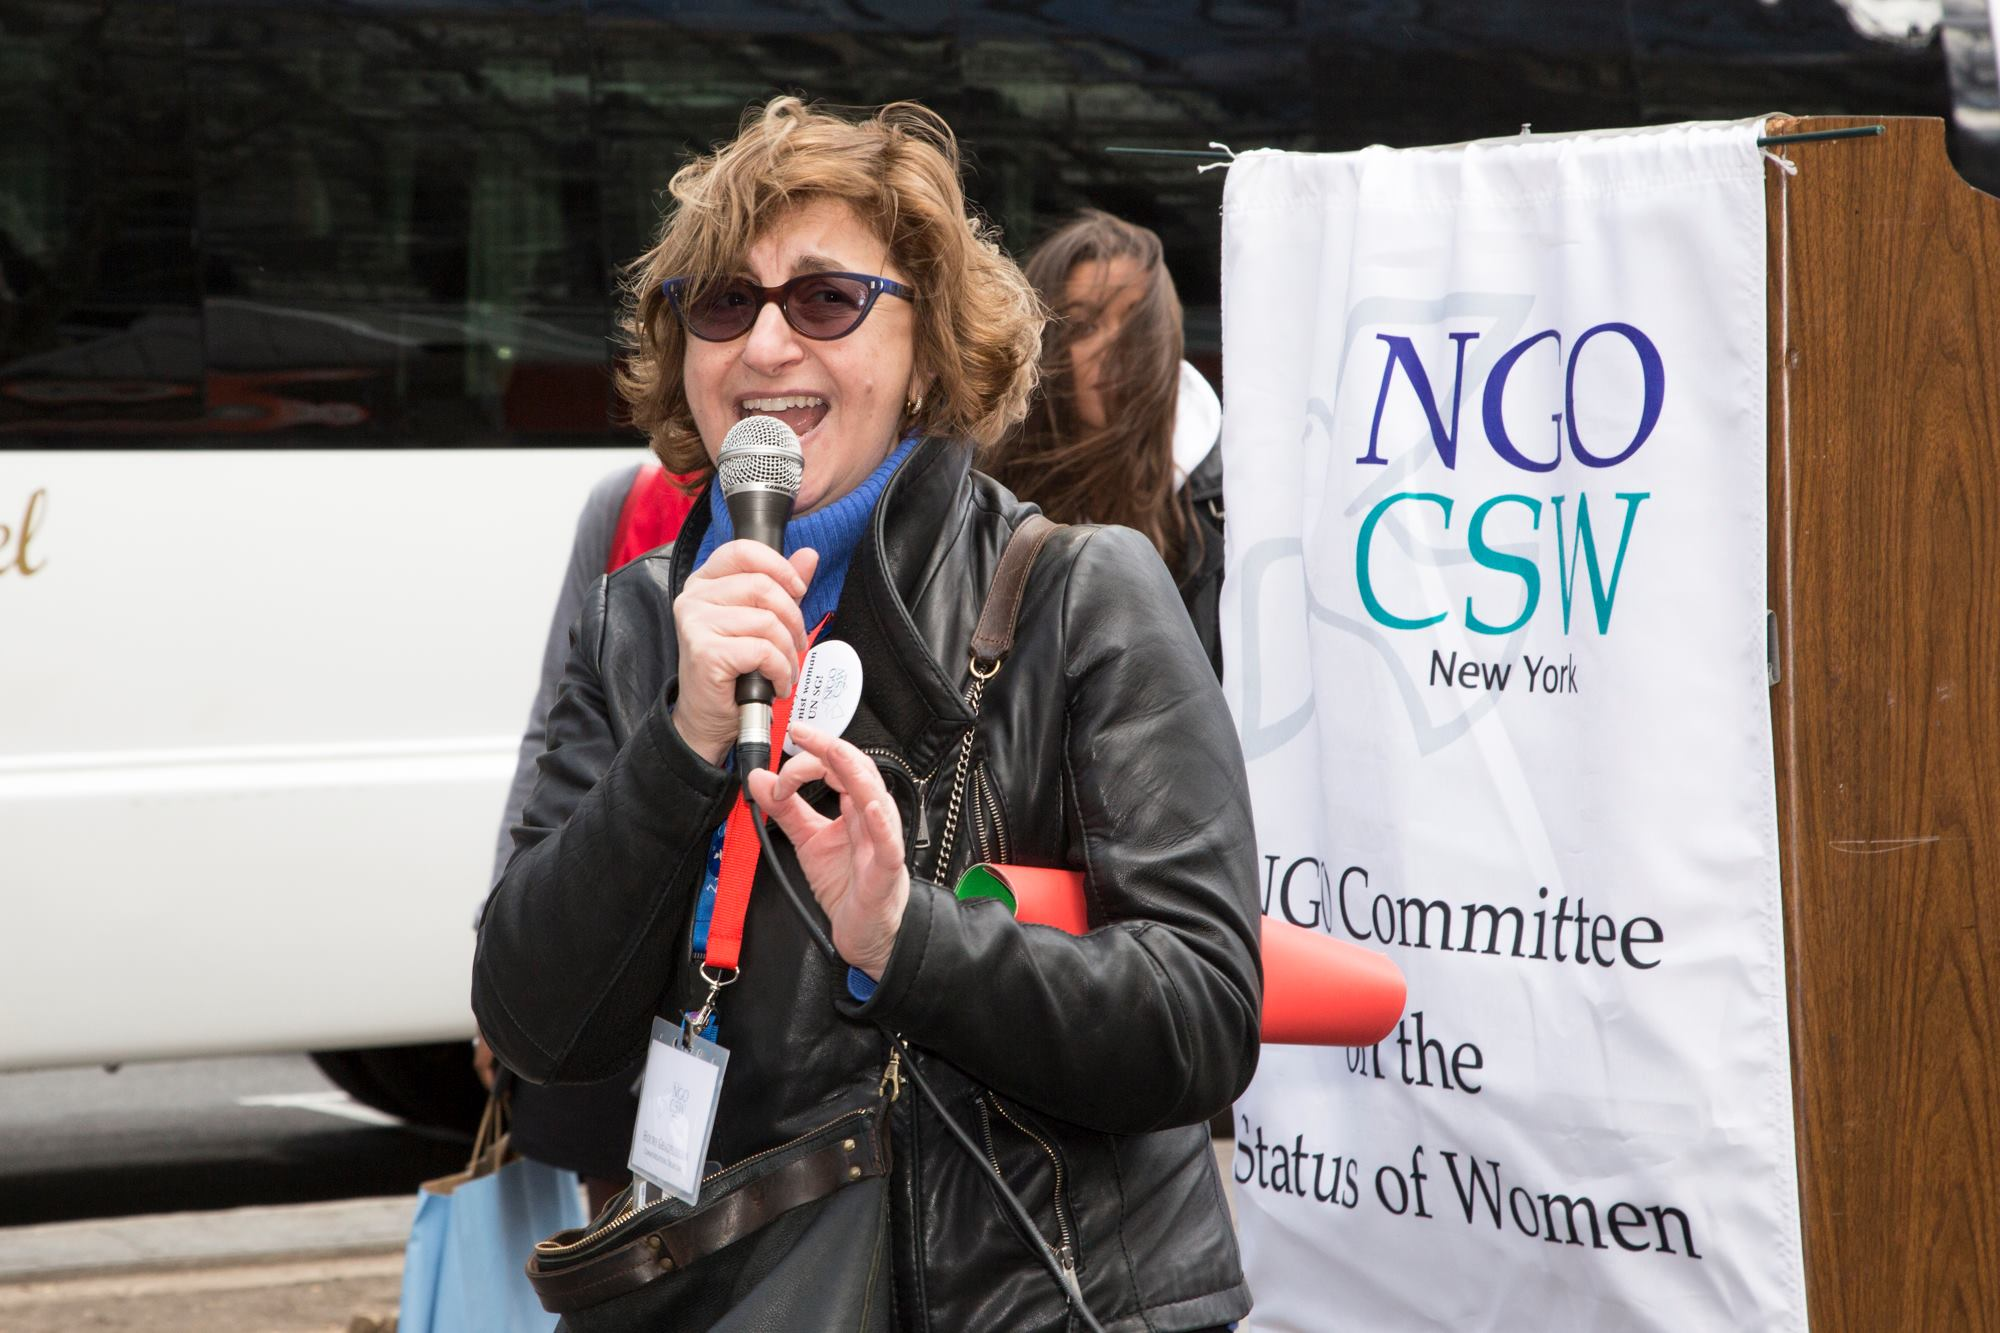 Houry speaking on behalf of NGO CSW NY in New York City.